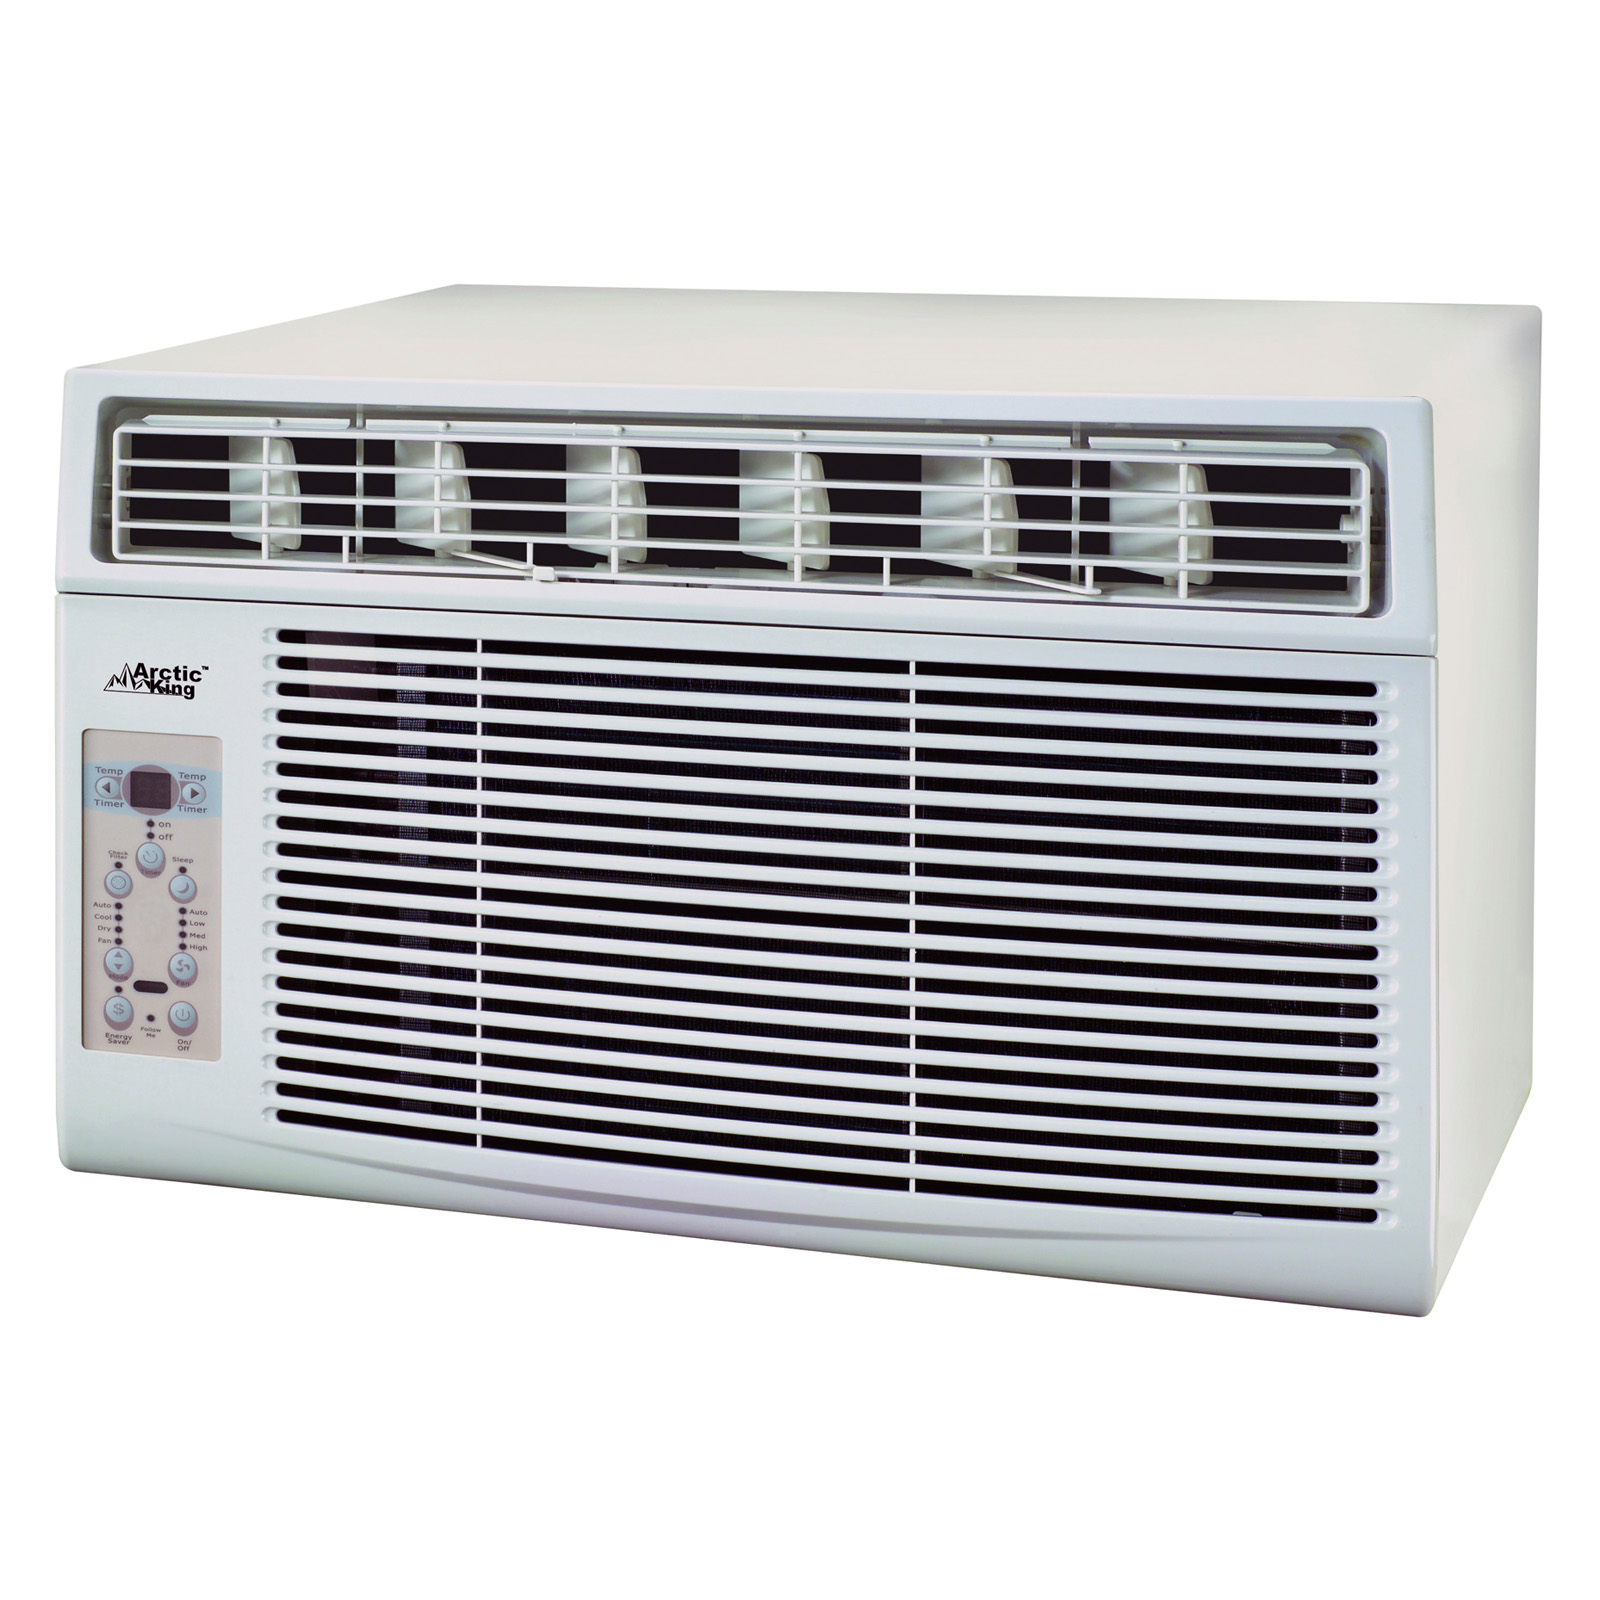 King MWK 10CRN1 10000 BTU Window Mounted Air Conditioner at Hayneedle #171217